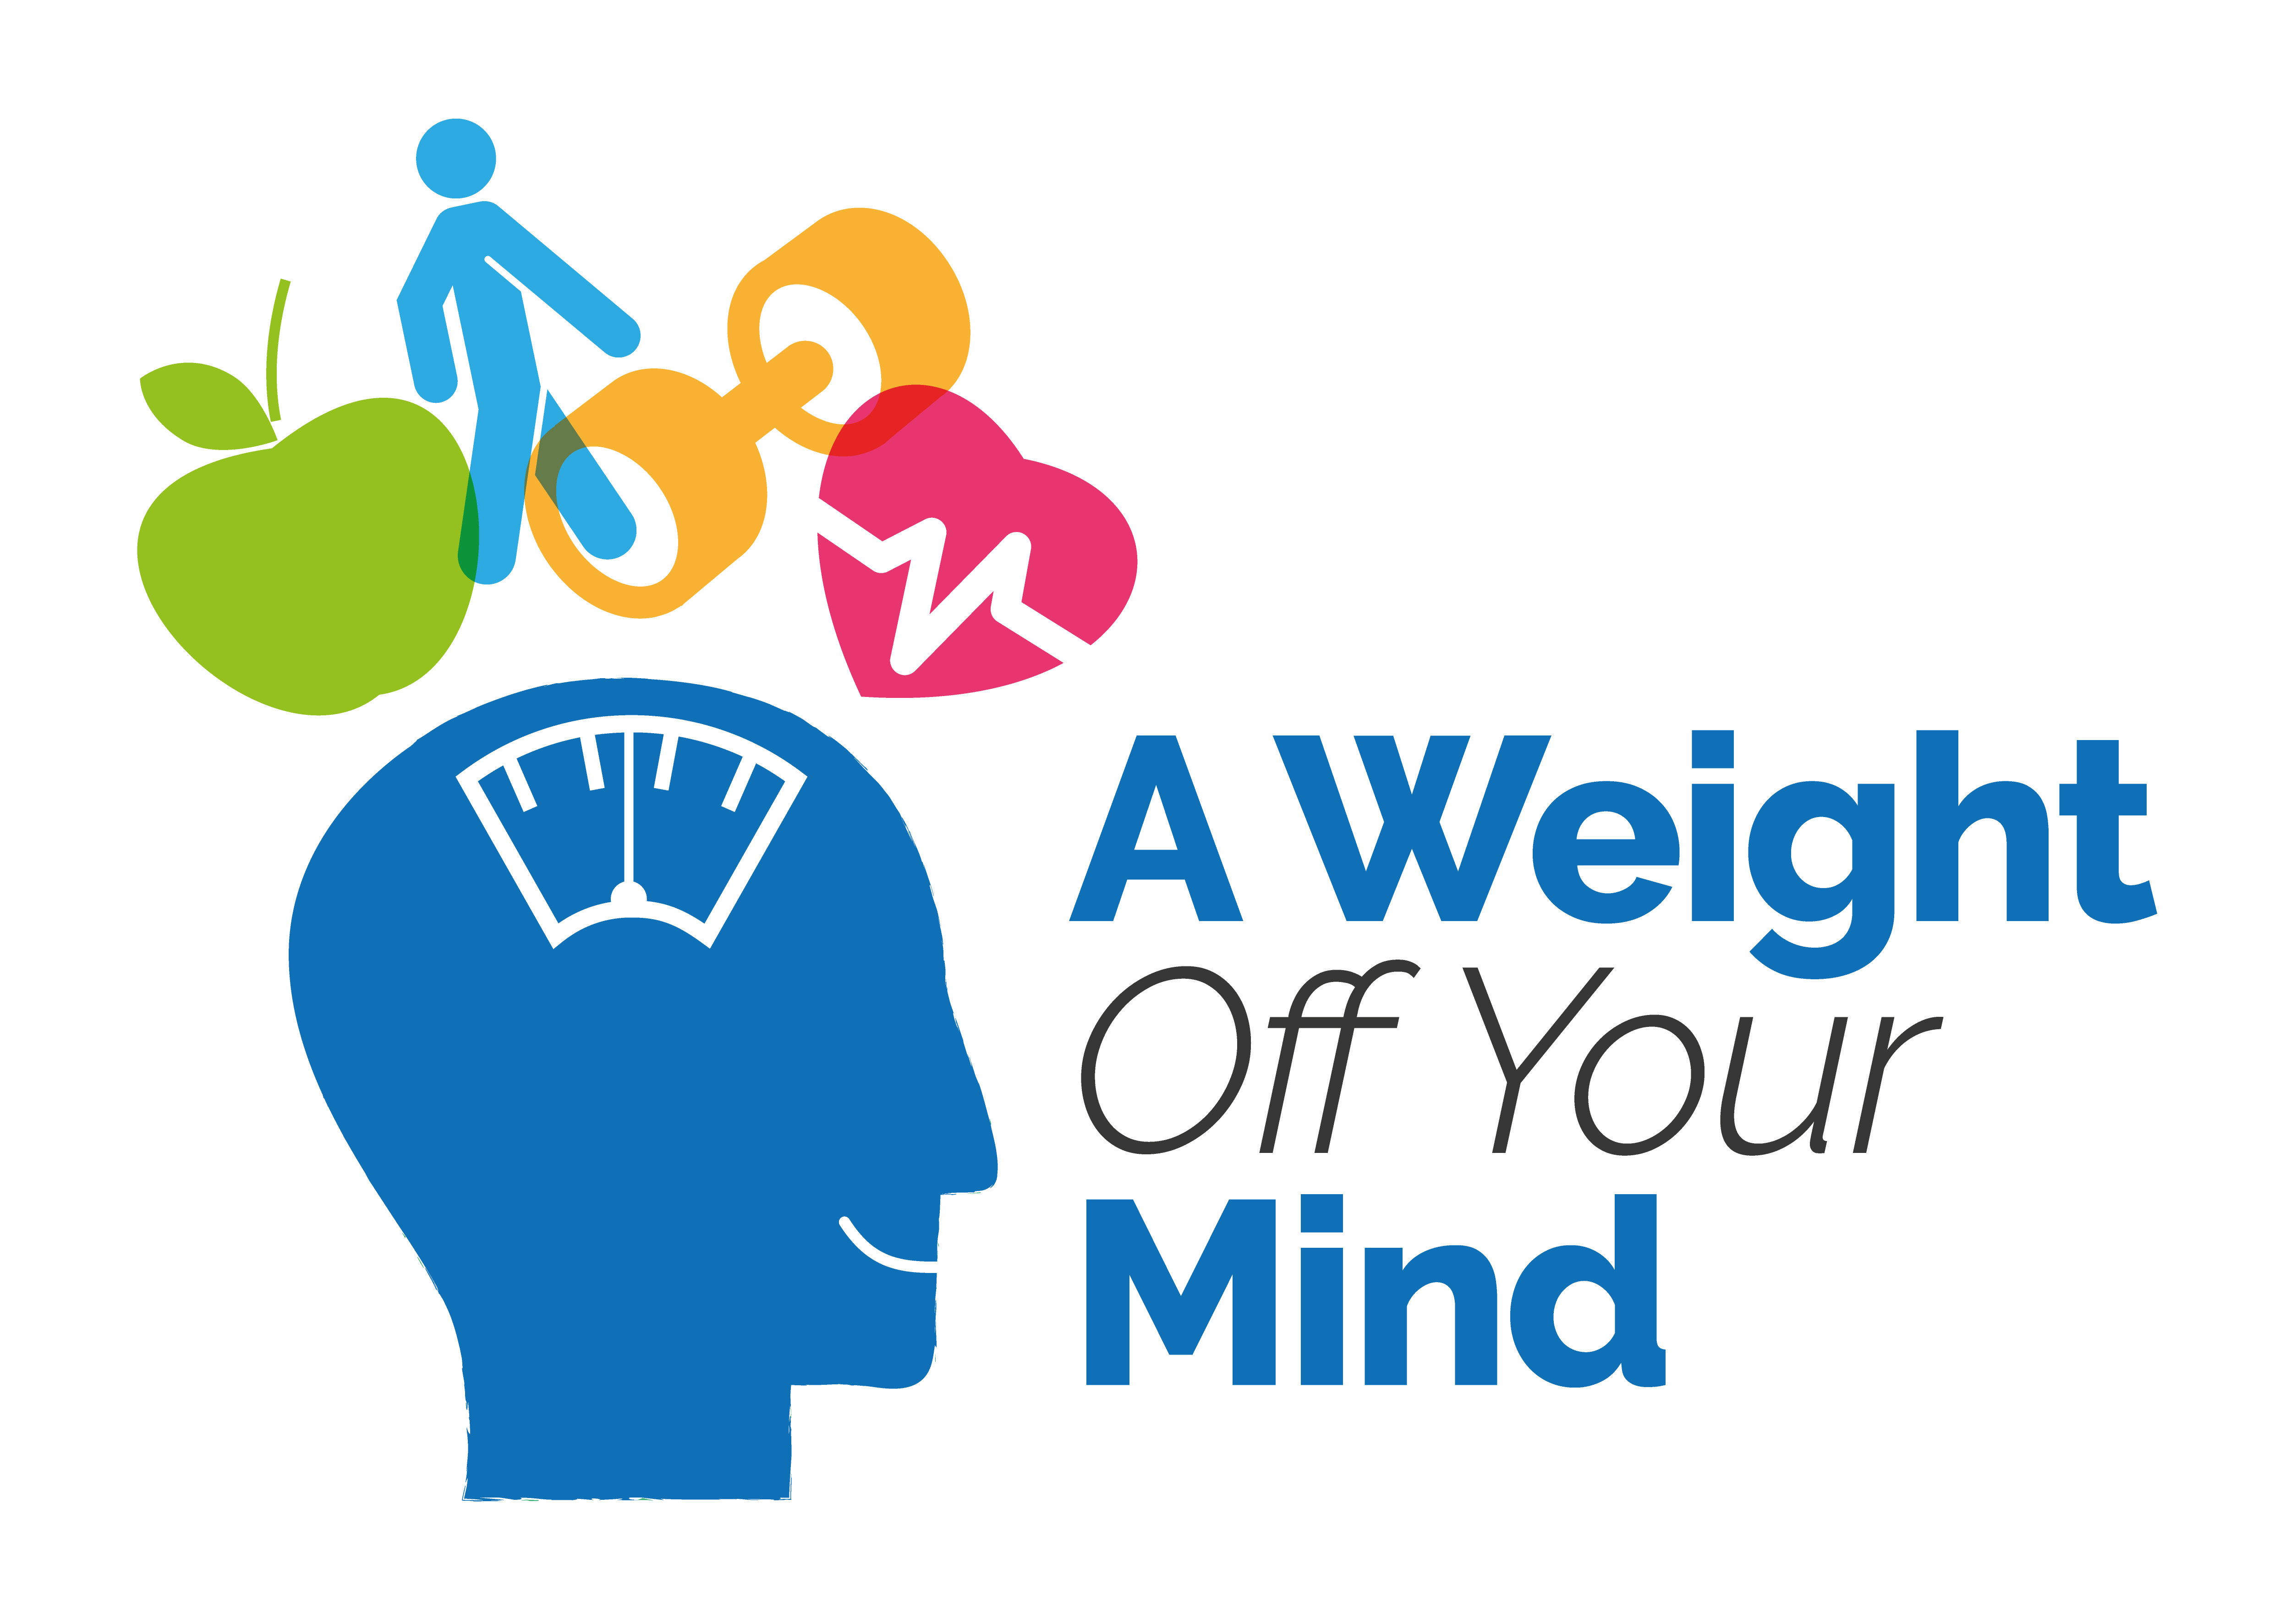 A Weight Off Your Mind